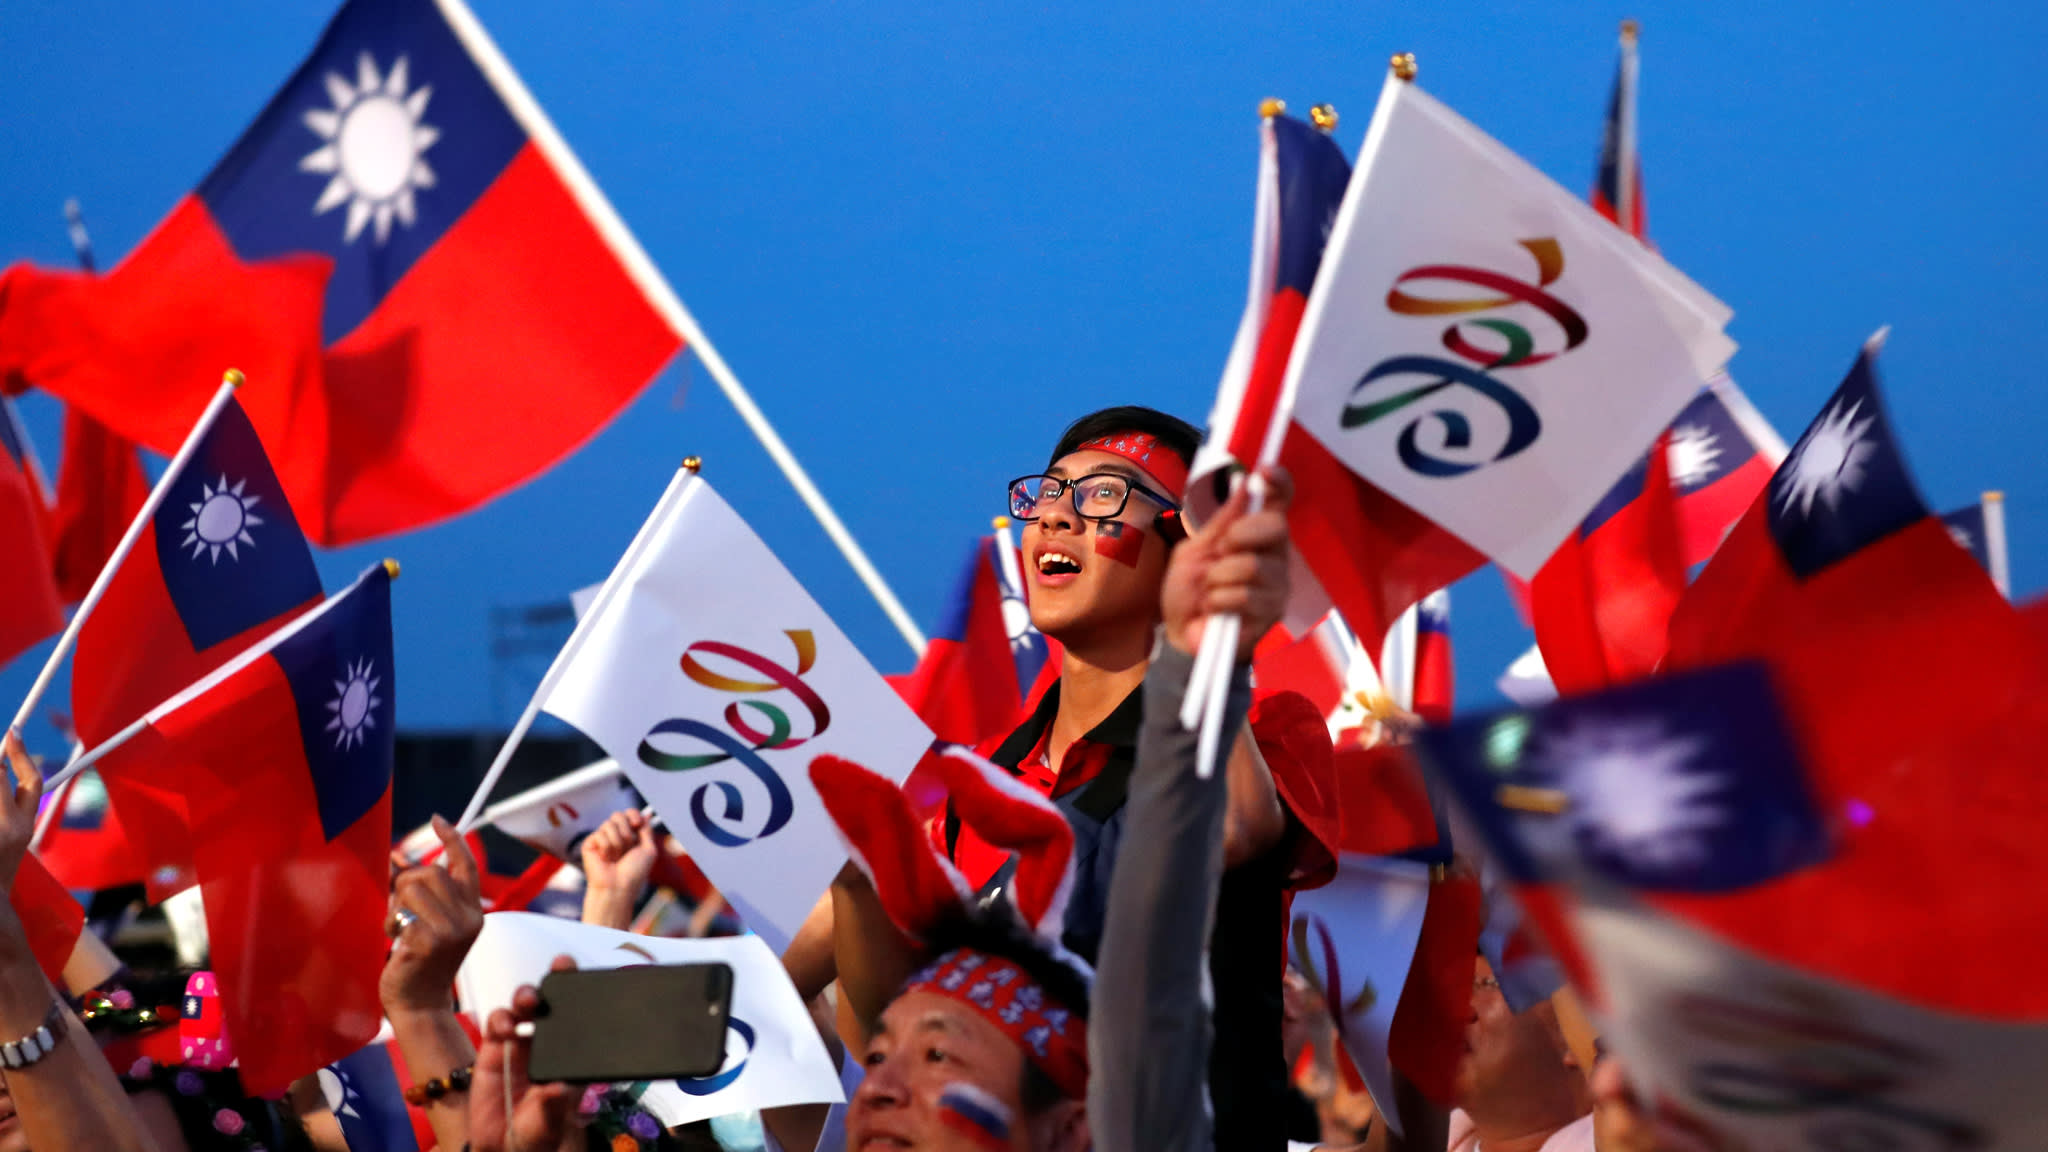 Supporters of Kaohsiung mayoral candidate Han Kuo-yu of the opposition Nationalist Party, or Kuomintang, ata campaign rally for local elections, in Kaohsiung, Taiwan, on Nov.23.